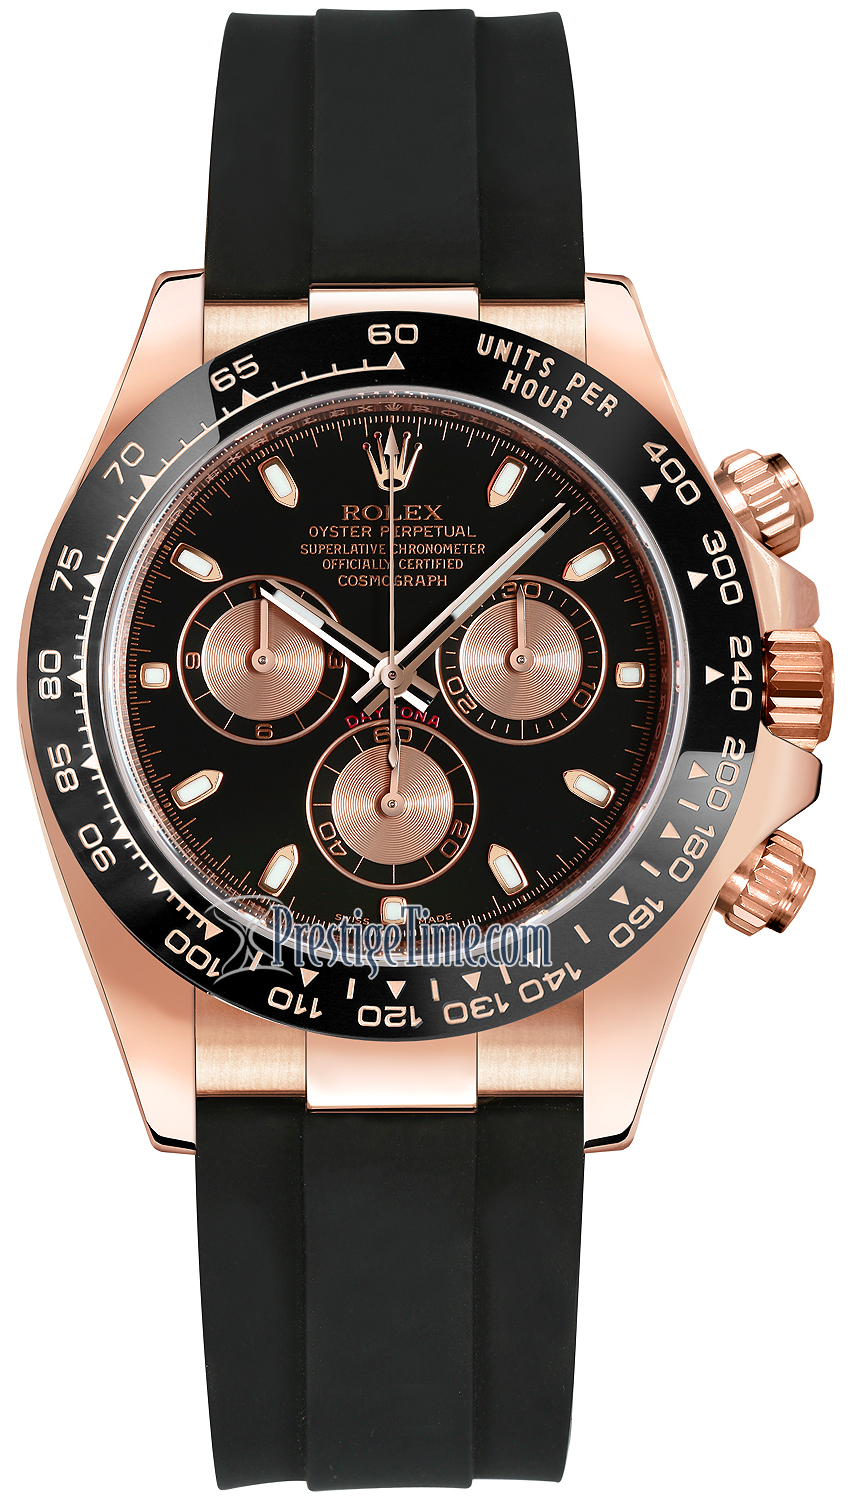 Rolex Cosmograph Daytona Everose Gold 116515LN Black and Pink Oysterflex